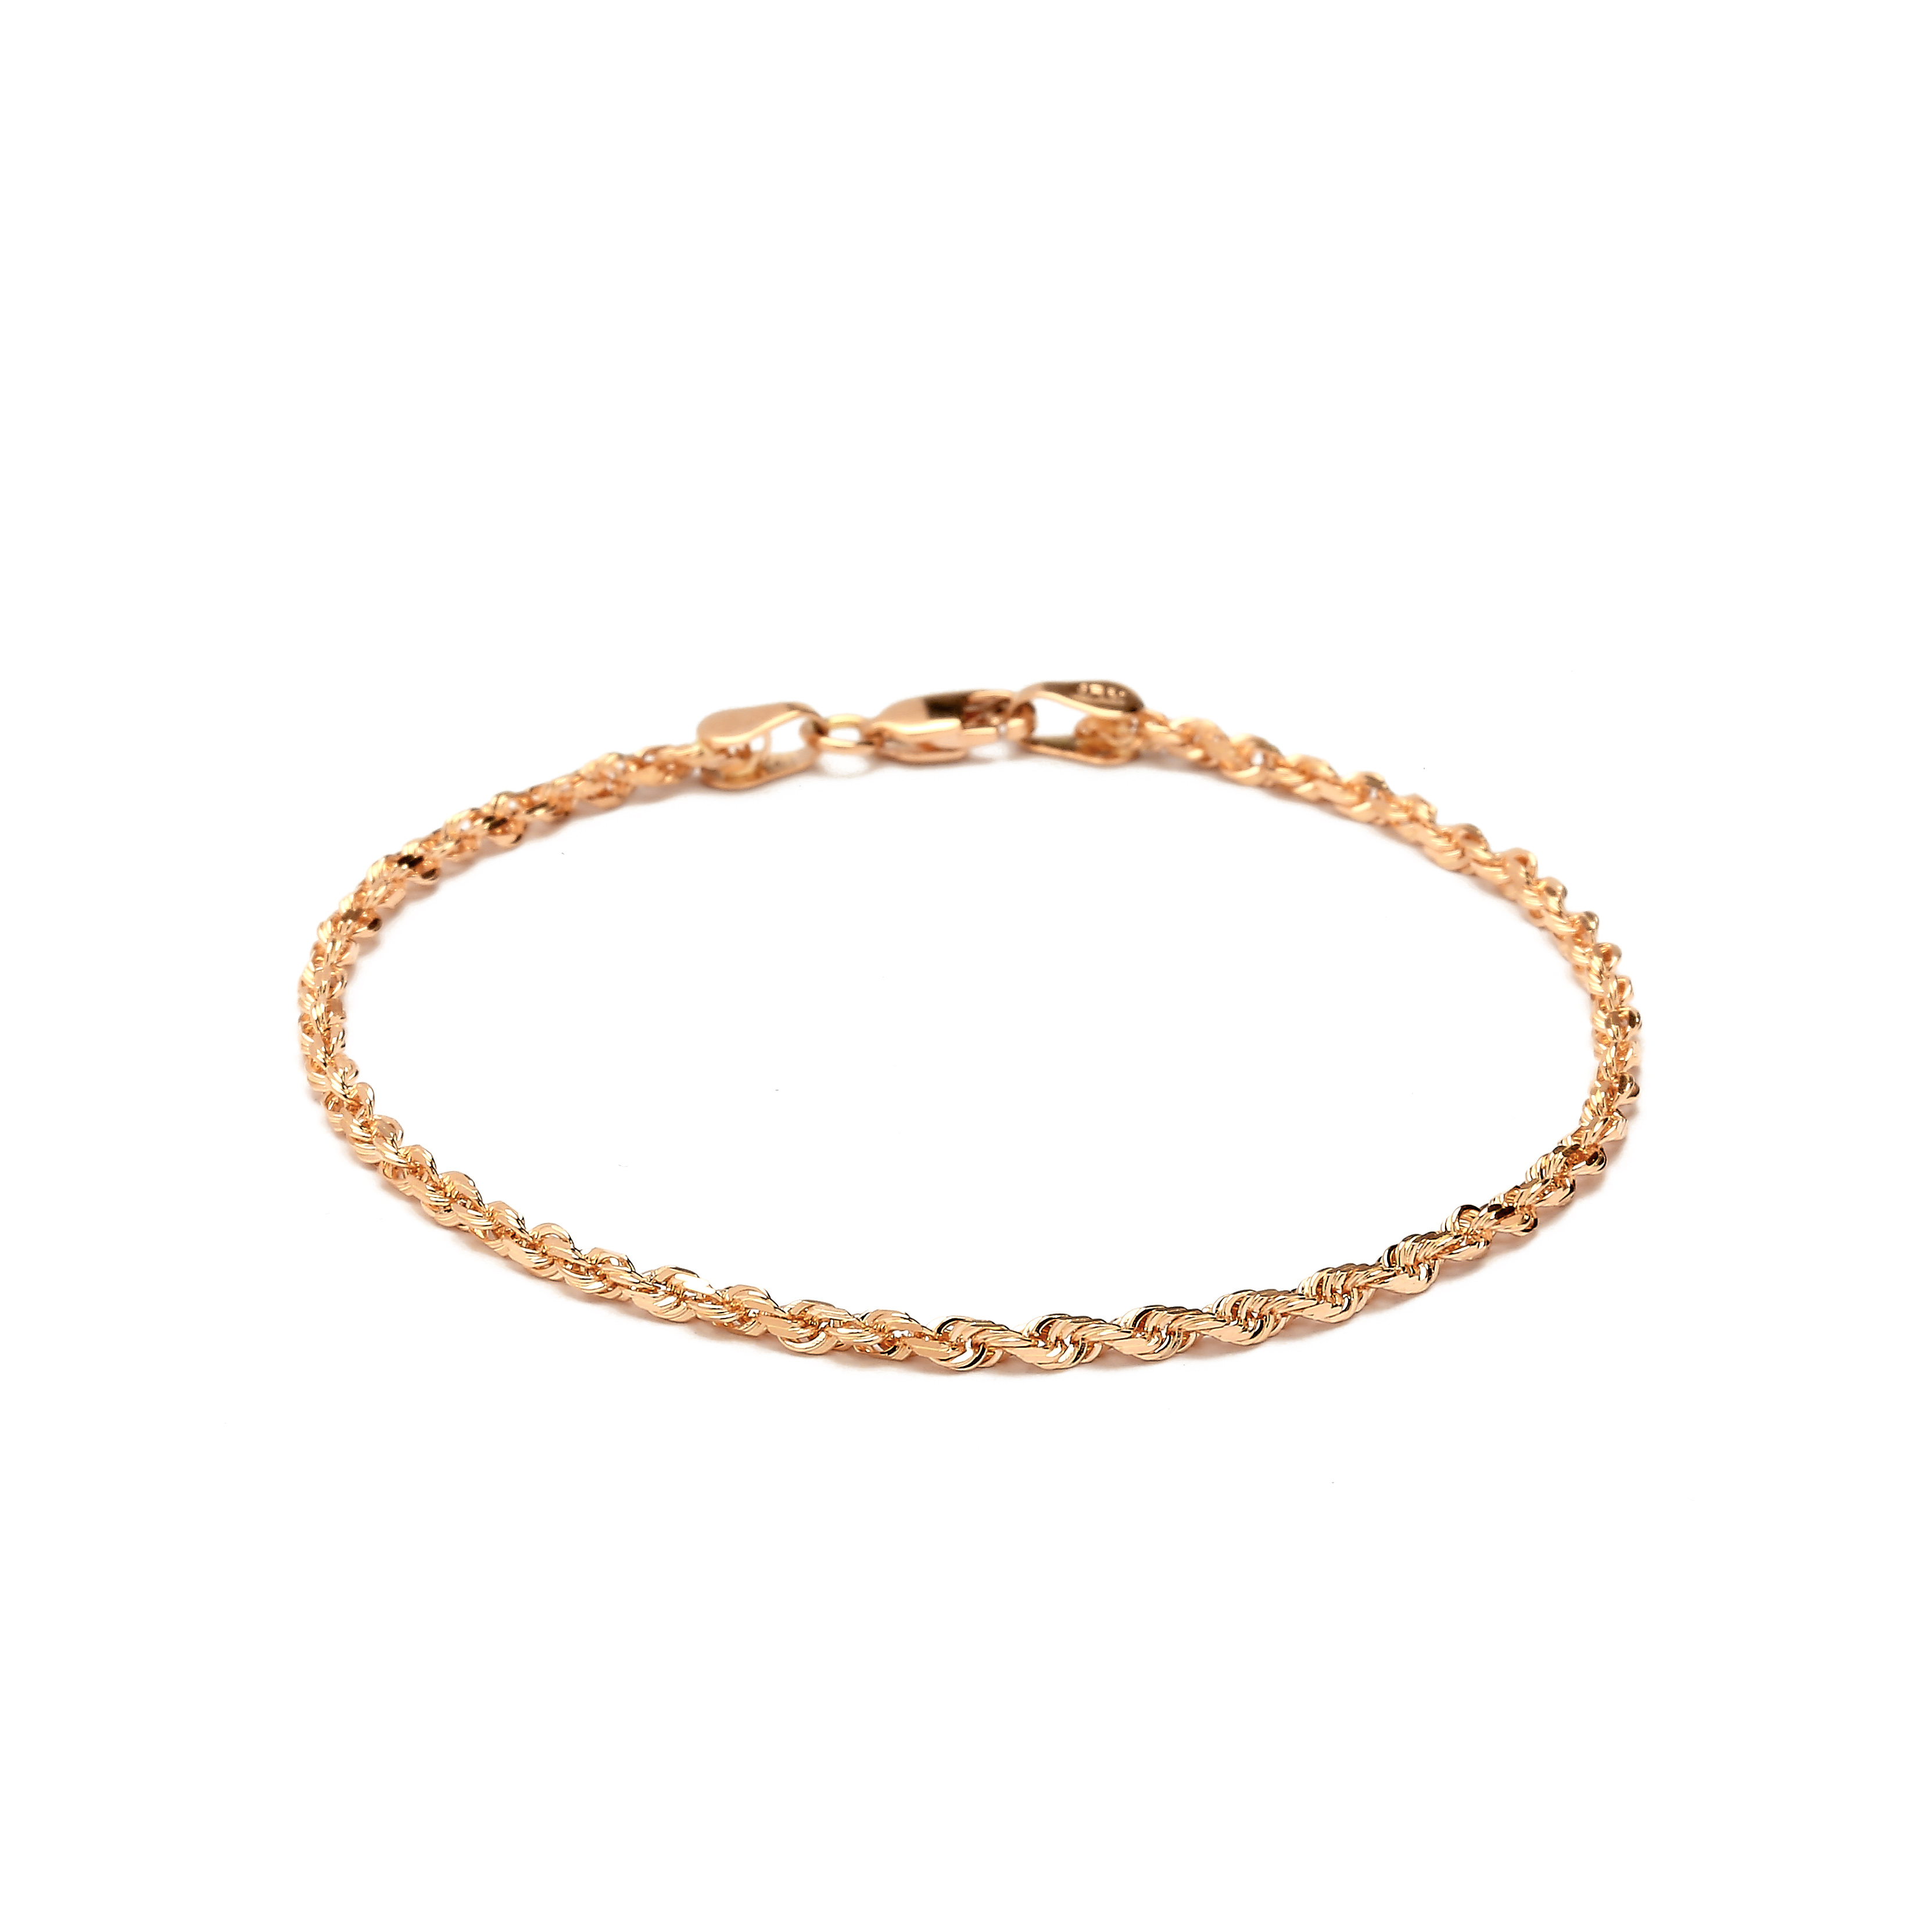 Jewelry Adviser Bracelets 14k Tri-color Circle /& Oval 9in with 1in ext Anklet Length 10